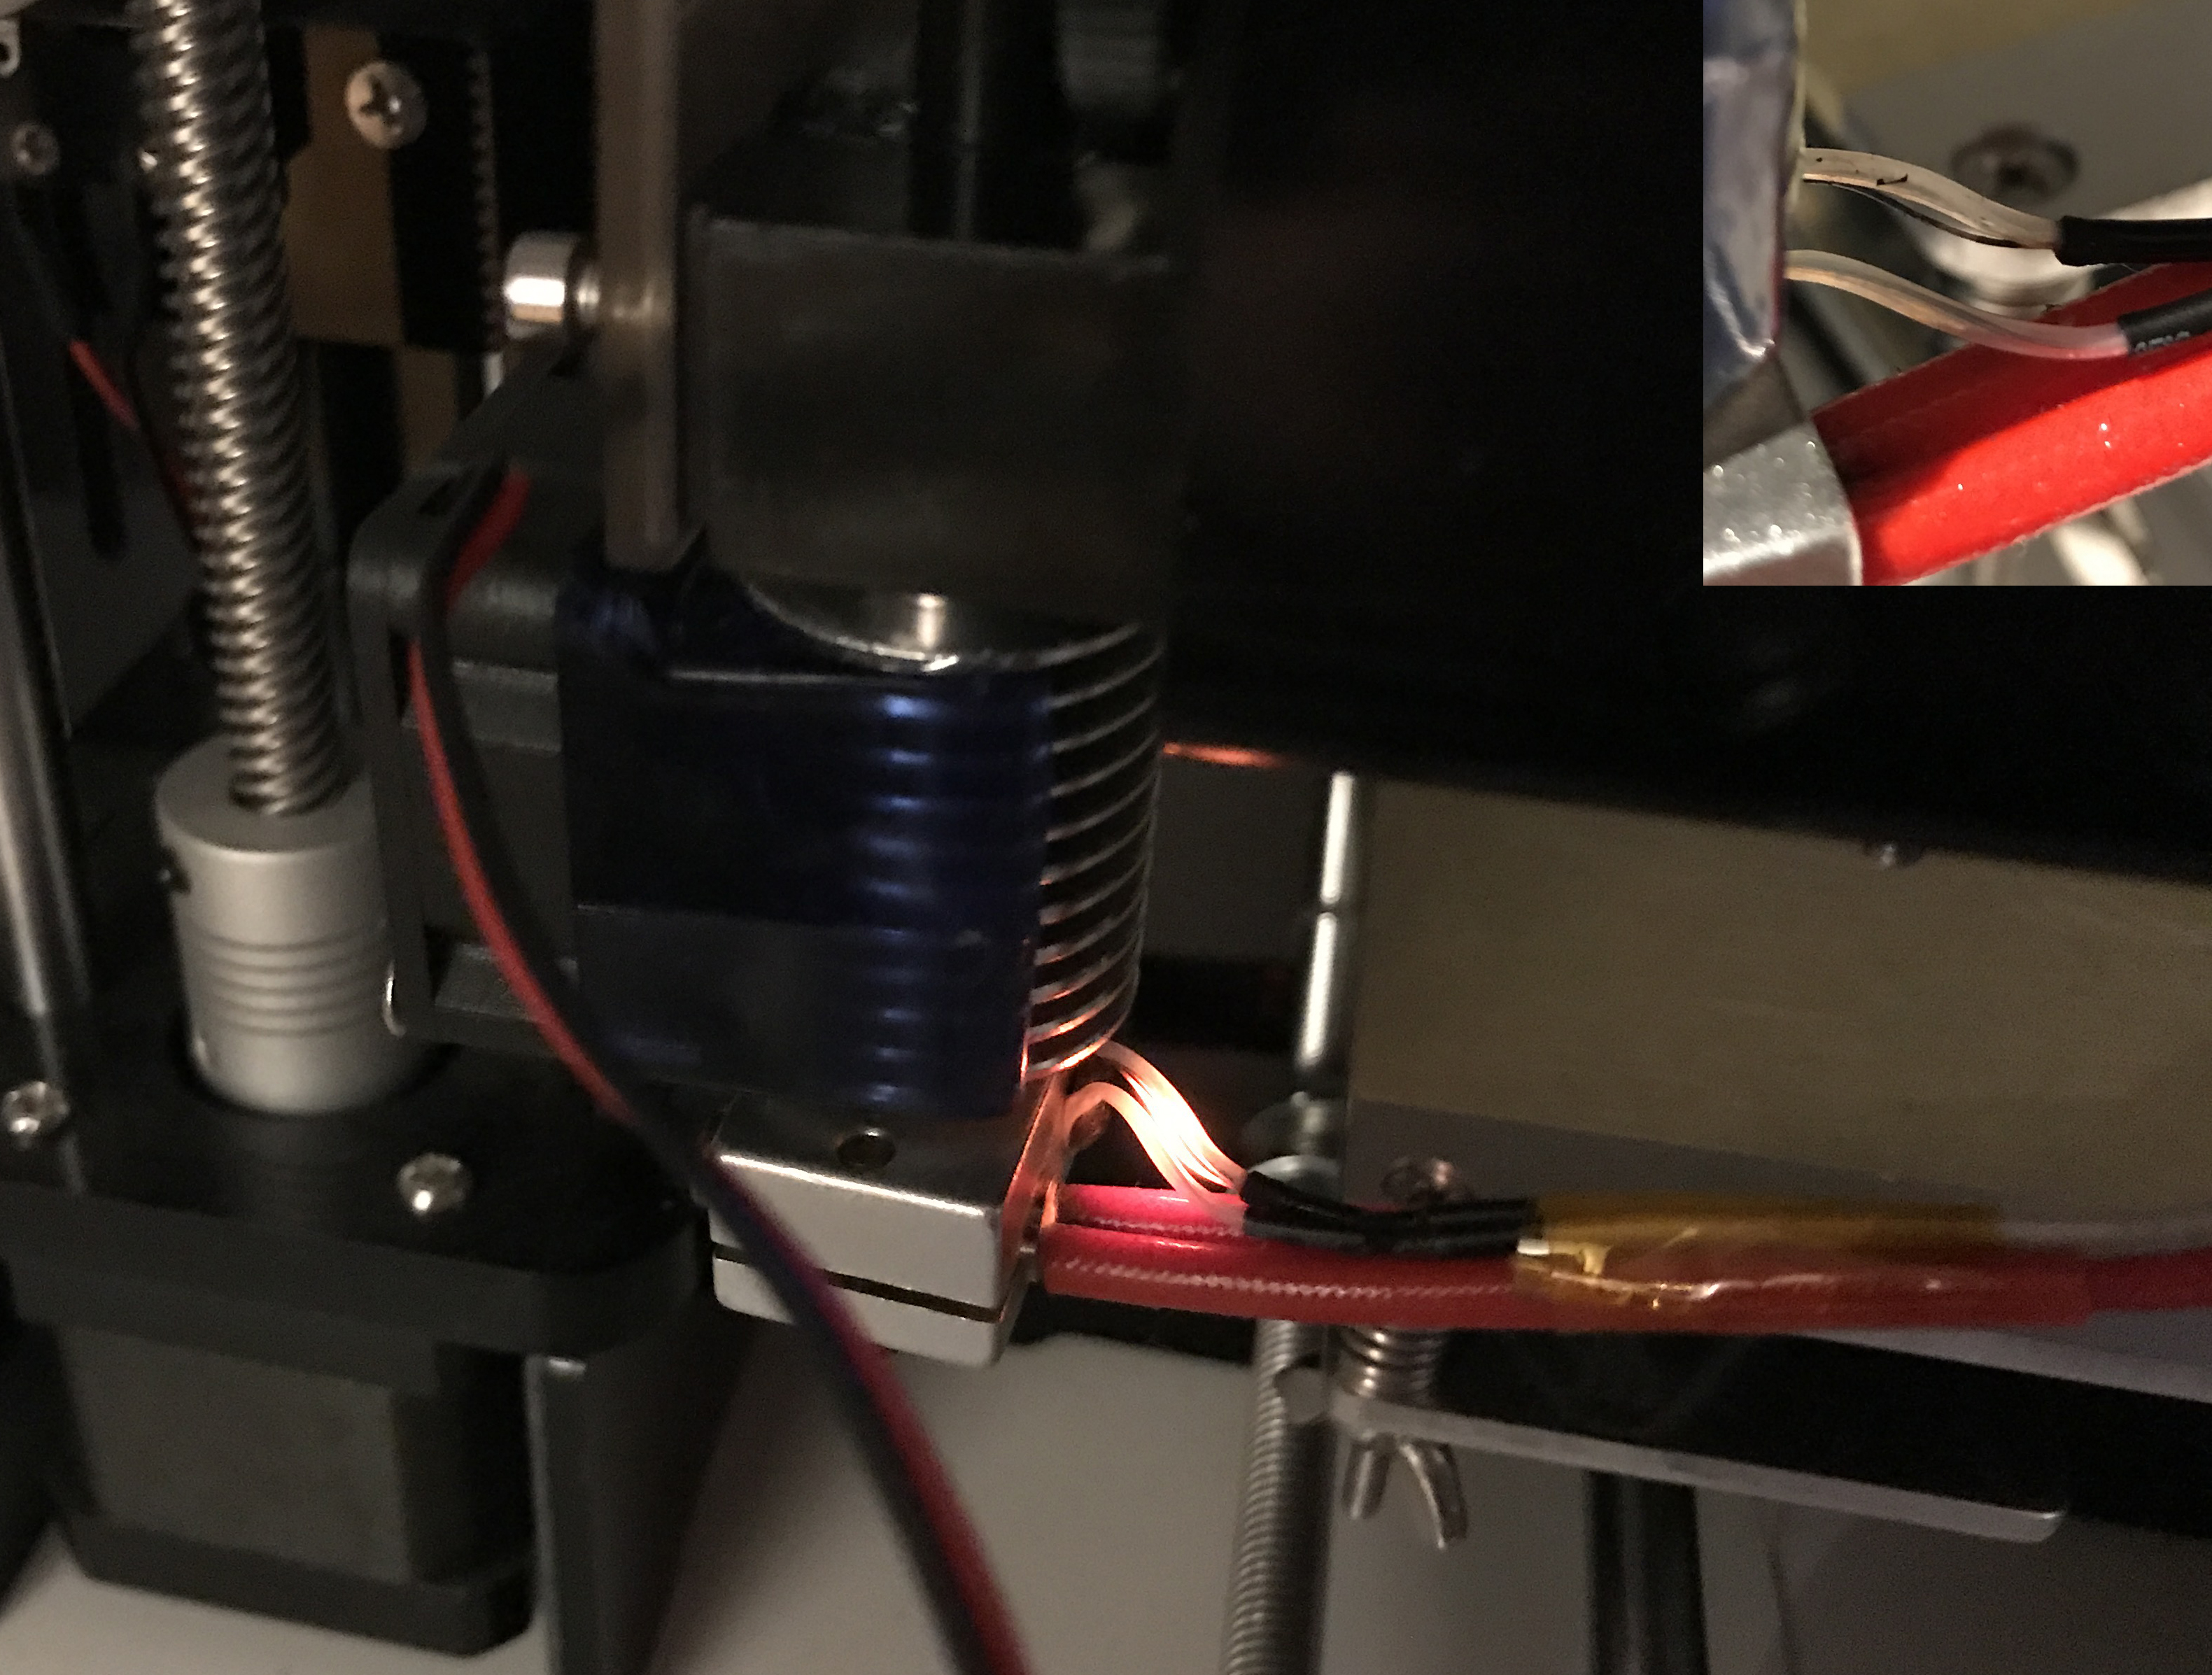 Remarkable Thermistor Wire Red Hot Glowing 3D Printers Talk Manufacturing Wiring Digital Resources Funapmognl